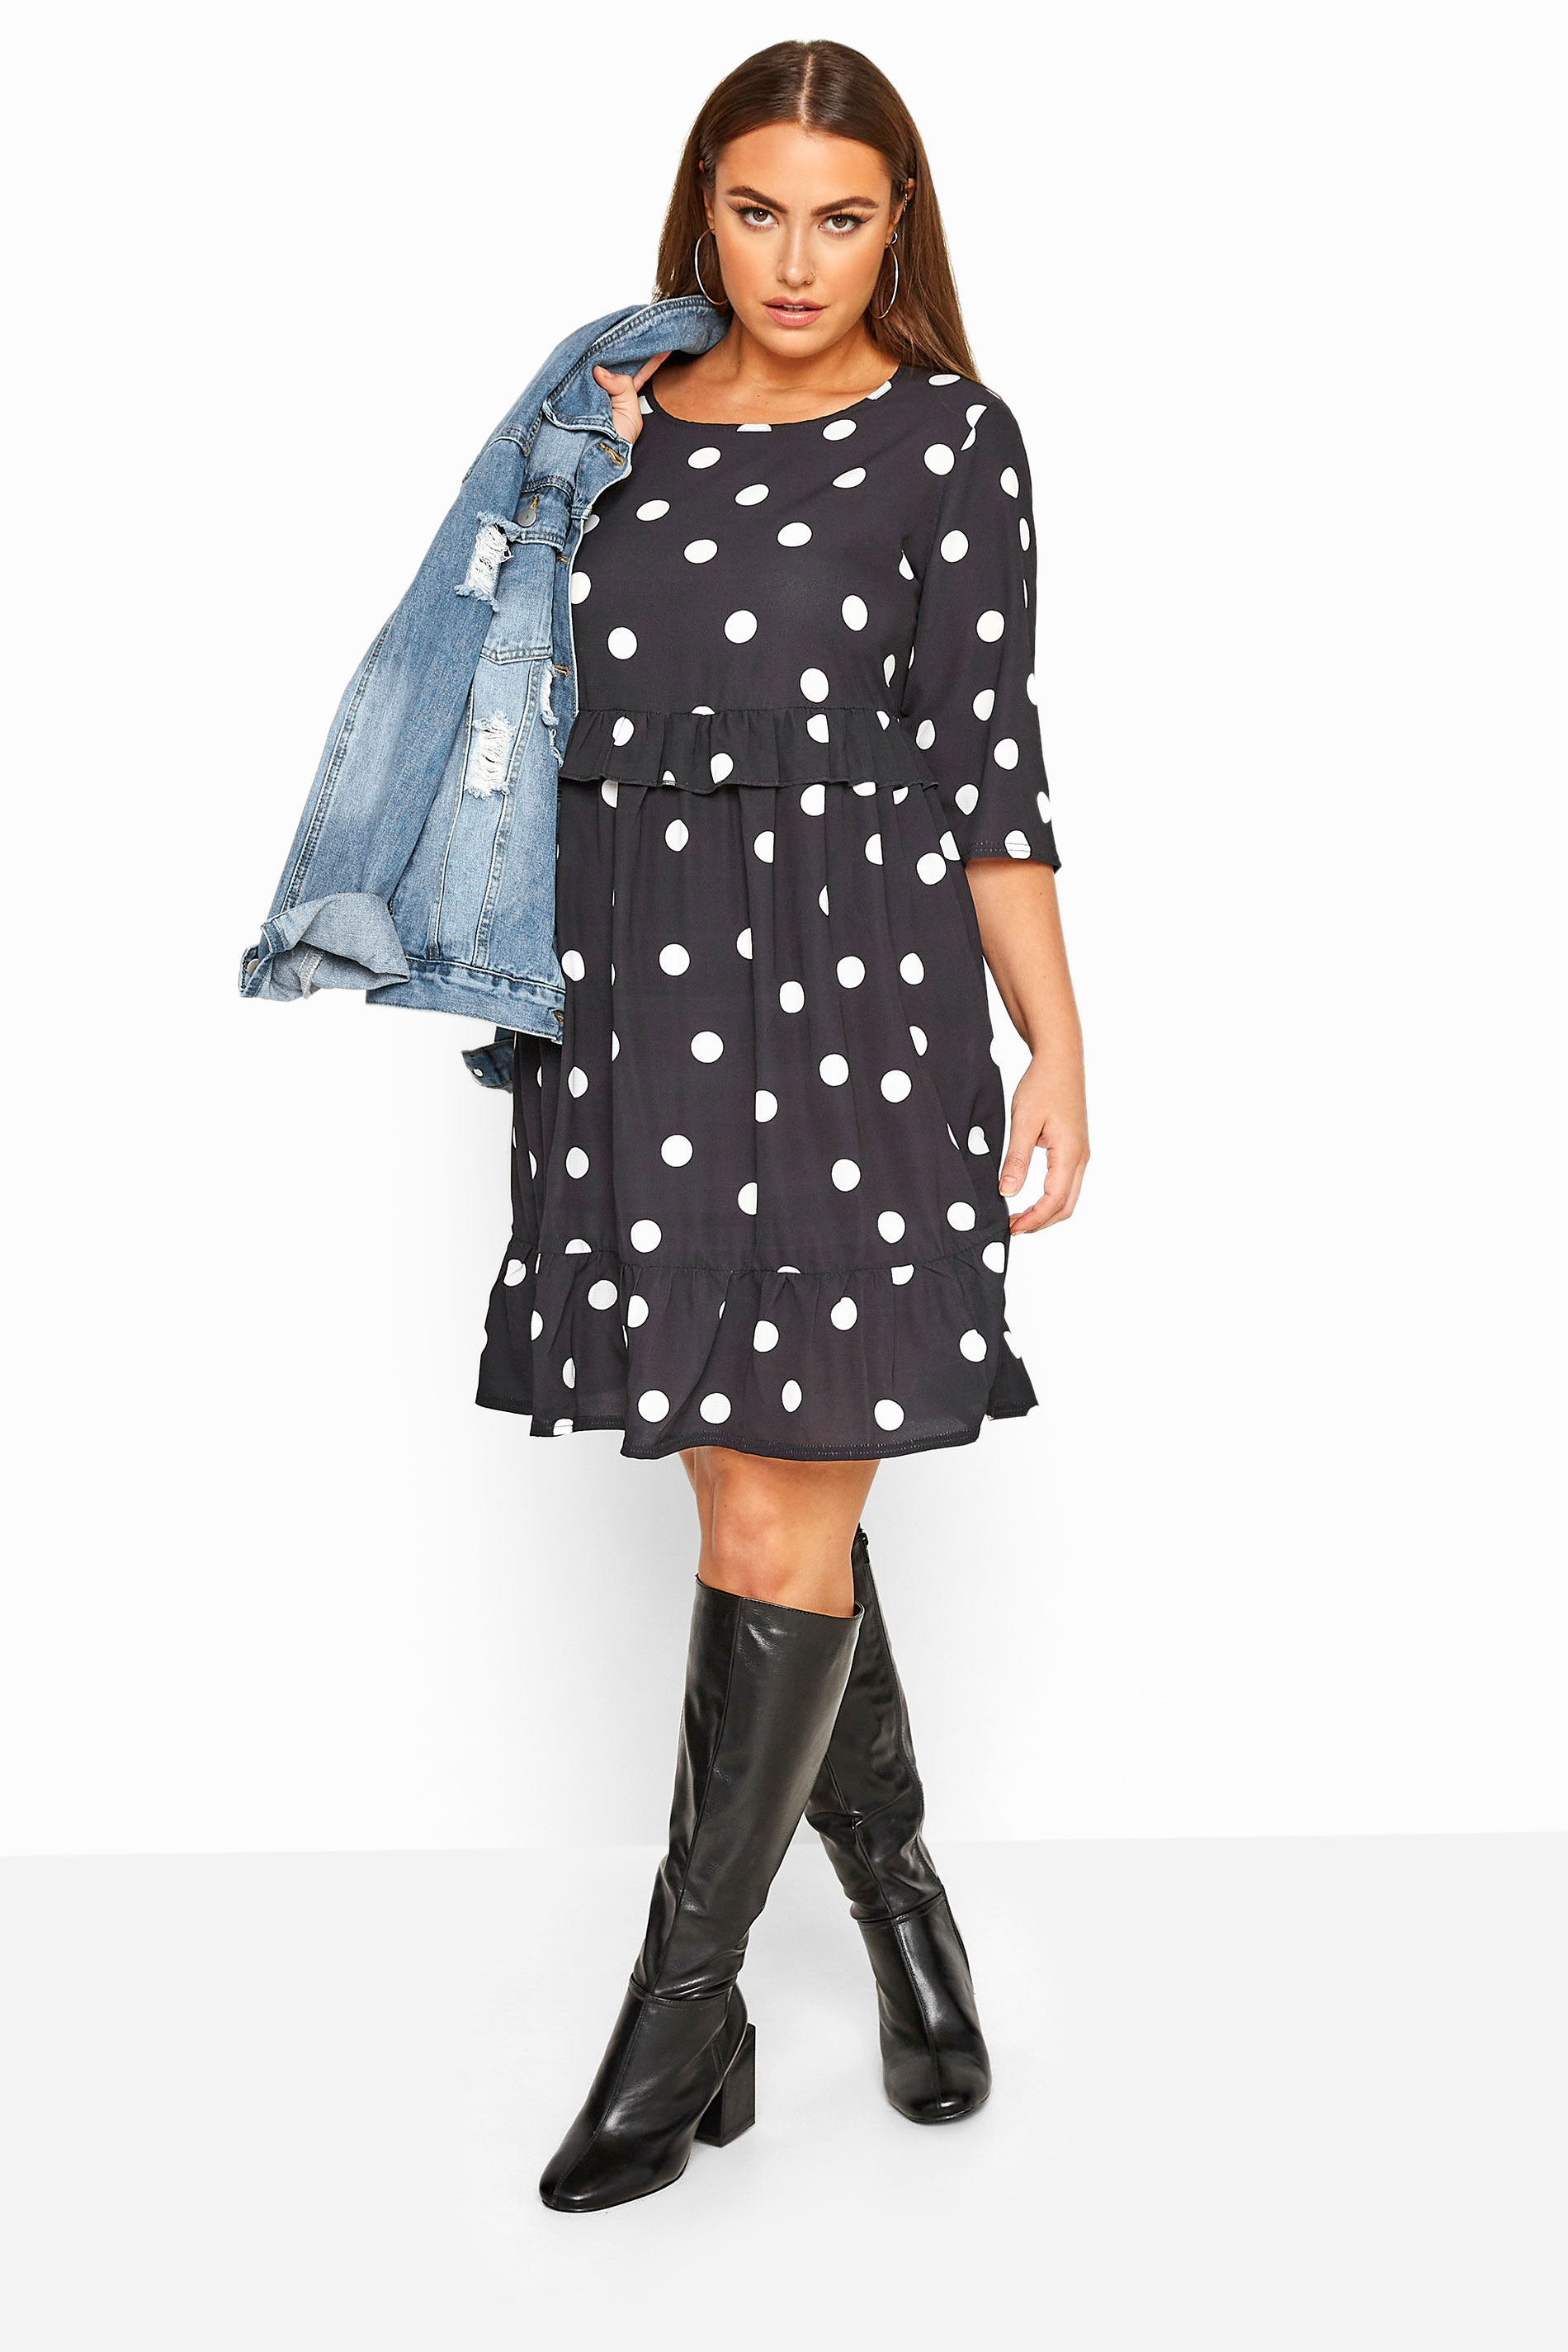 LIMITED COLLECTION Black Polka Dot Frill Smock Dress